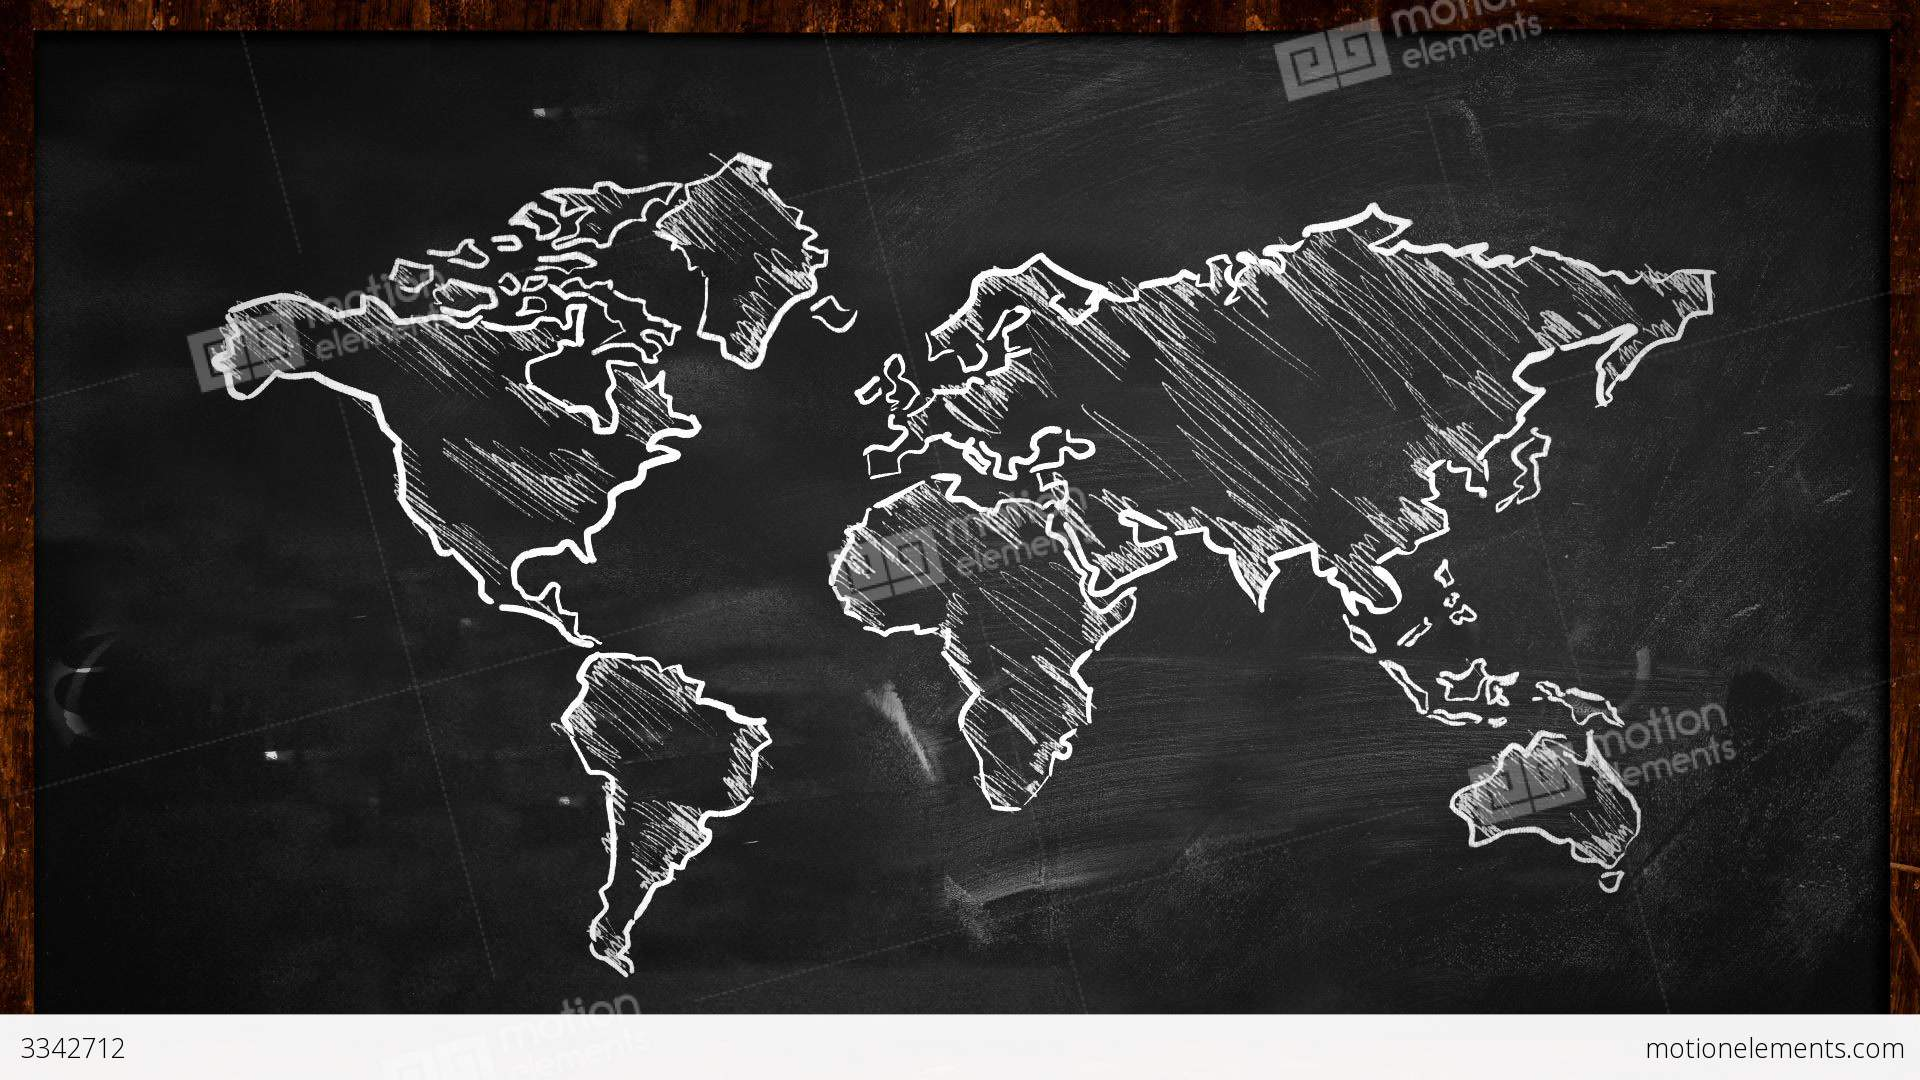 Vintage Black Wallpaper World Chalk Sketch On Blackboard Looping Animation Stock